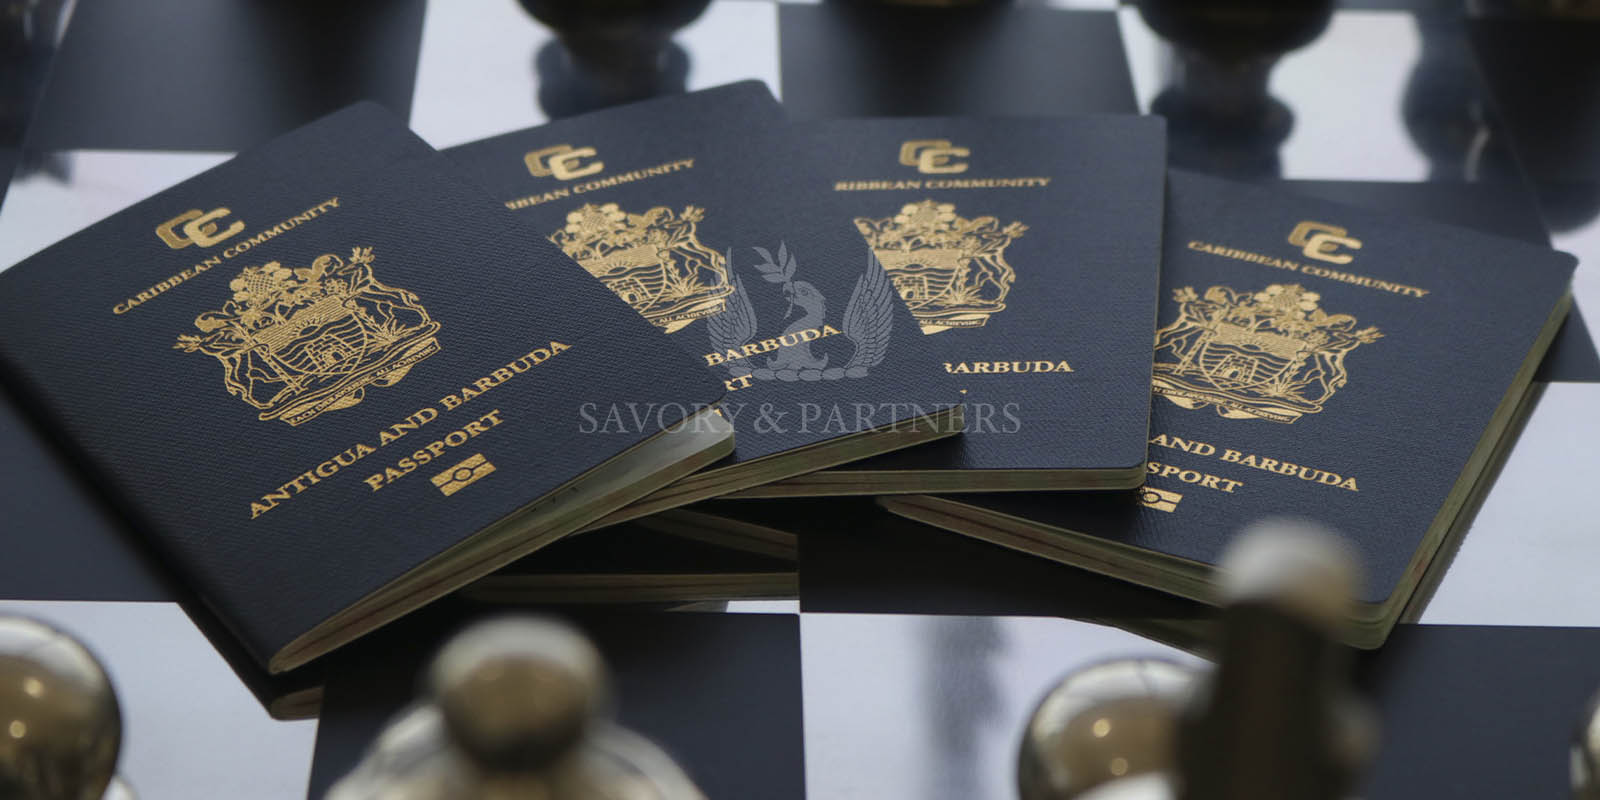 Antigua & Barbuda CBI program is based on the citizenship law & is guaranteed by the government since 2013.